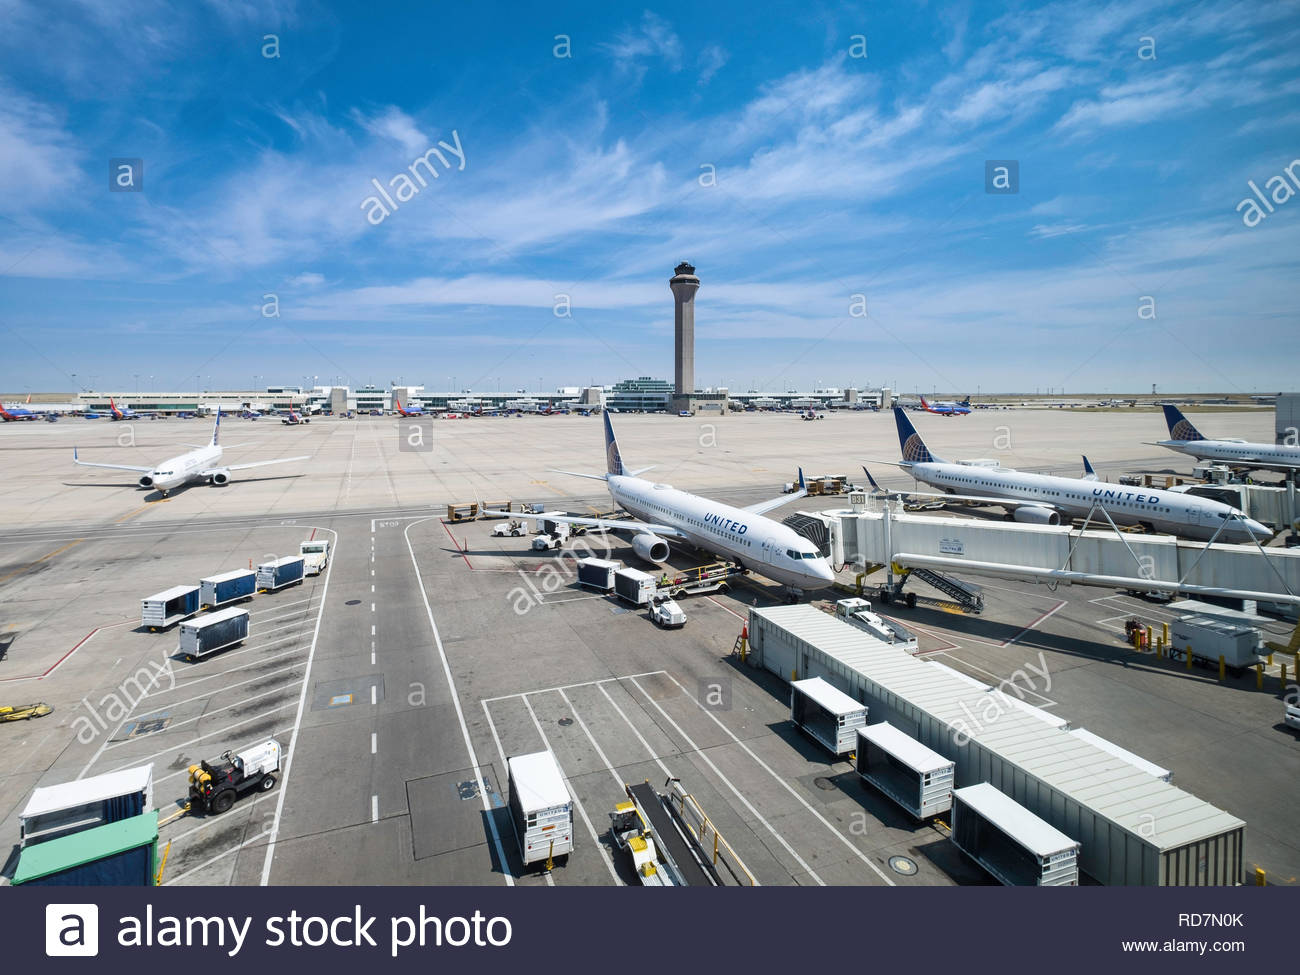 United Airlines commercial passenger jet aircraft parked at concourse B with concourse C and control tower in the background, Denver International Air - Stock Image